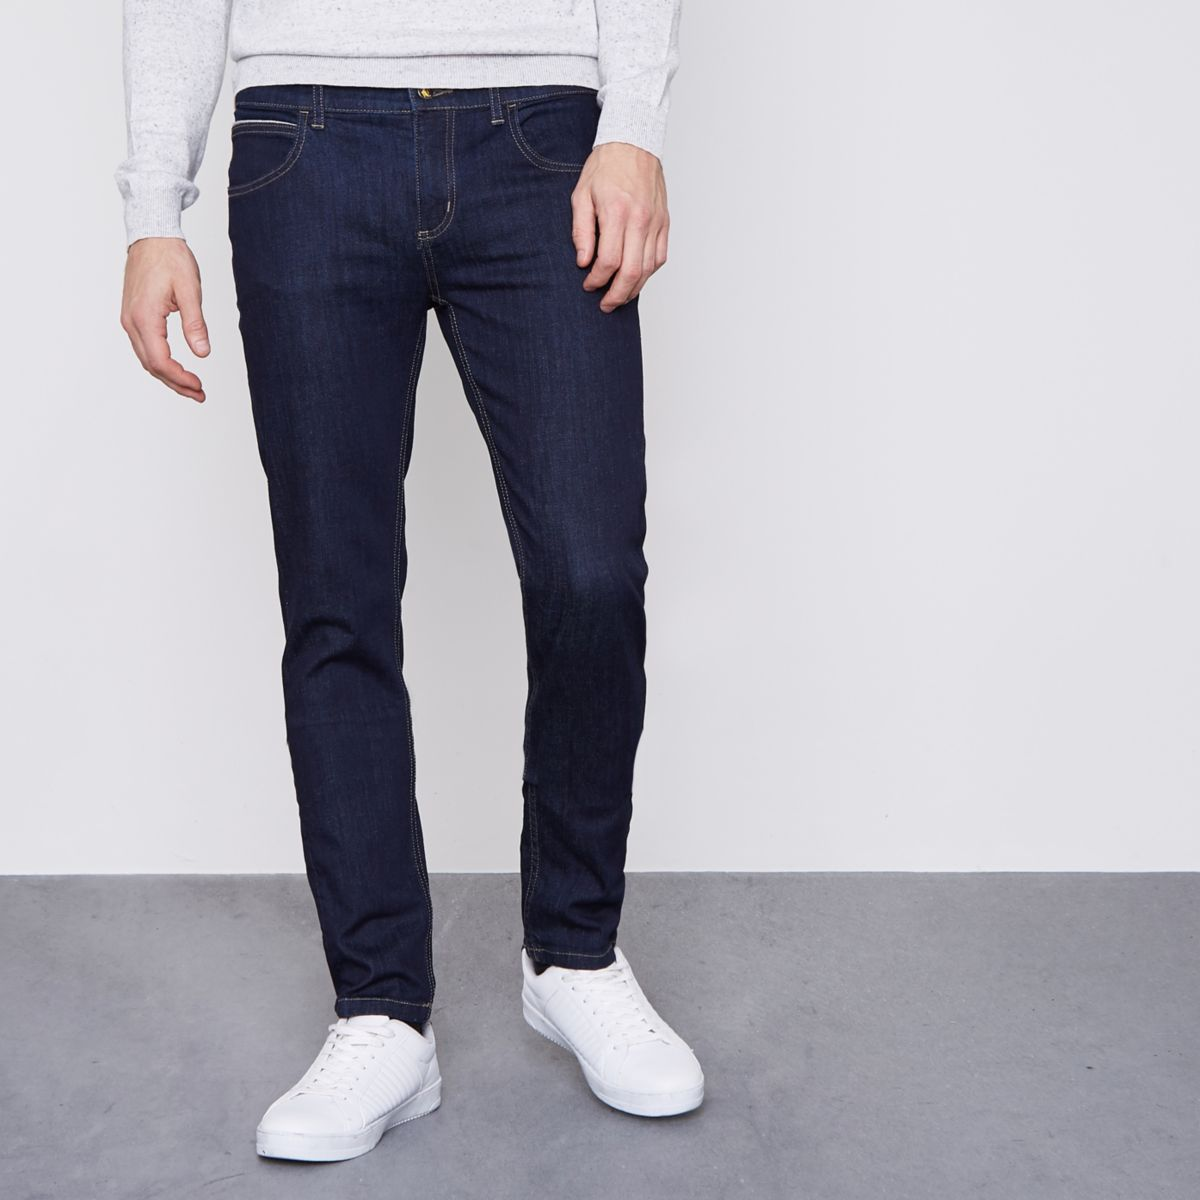 Monkee Genes dark blue slim tapered fit jeans